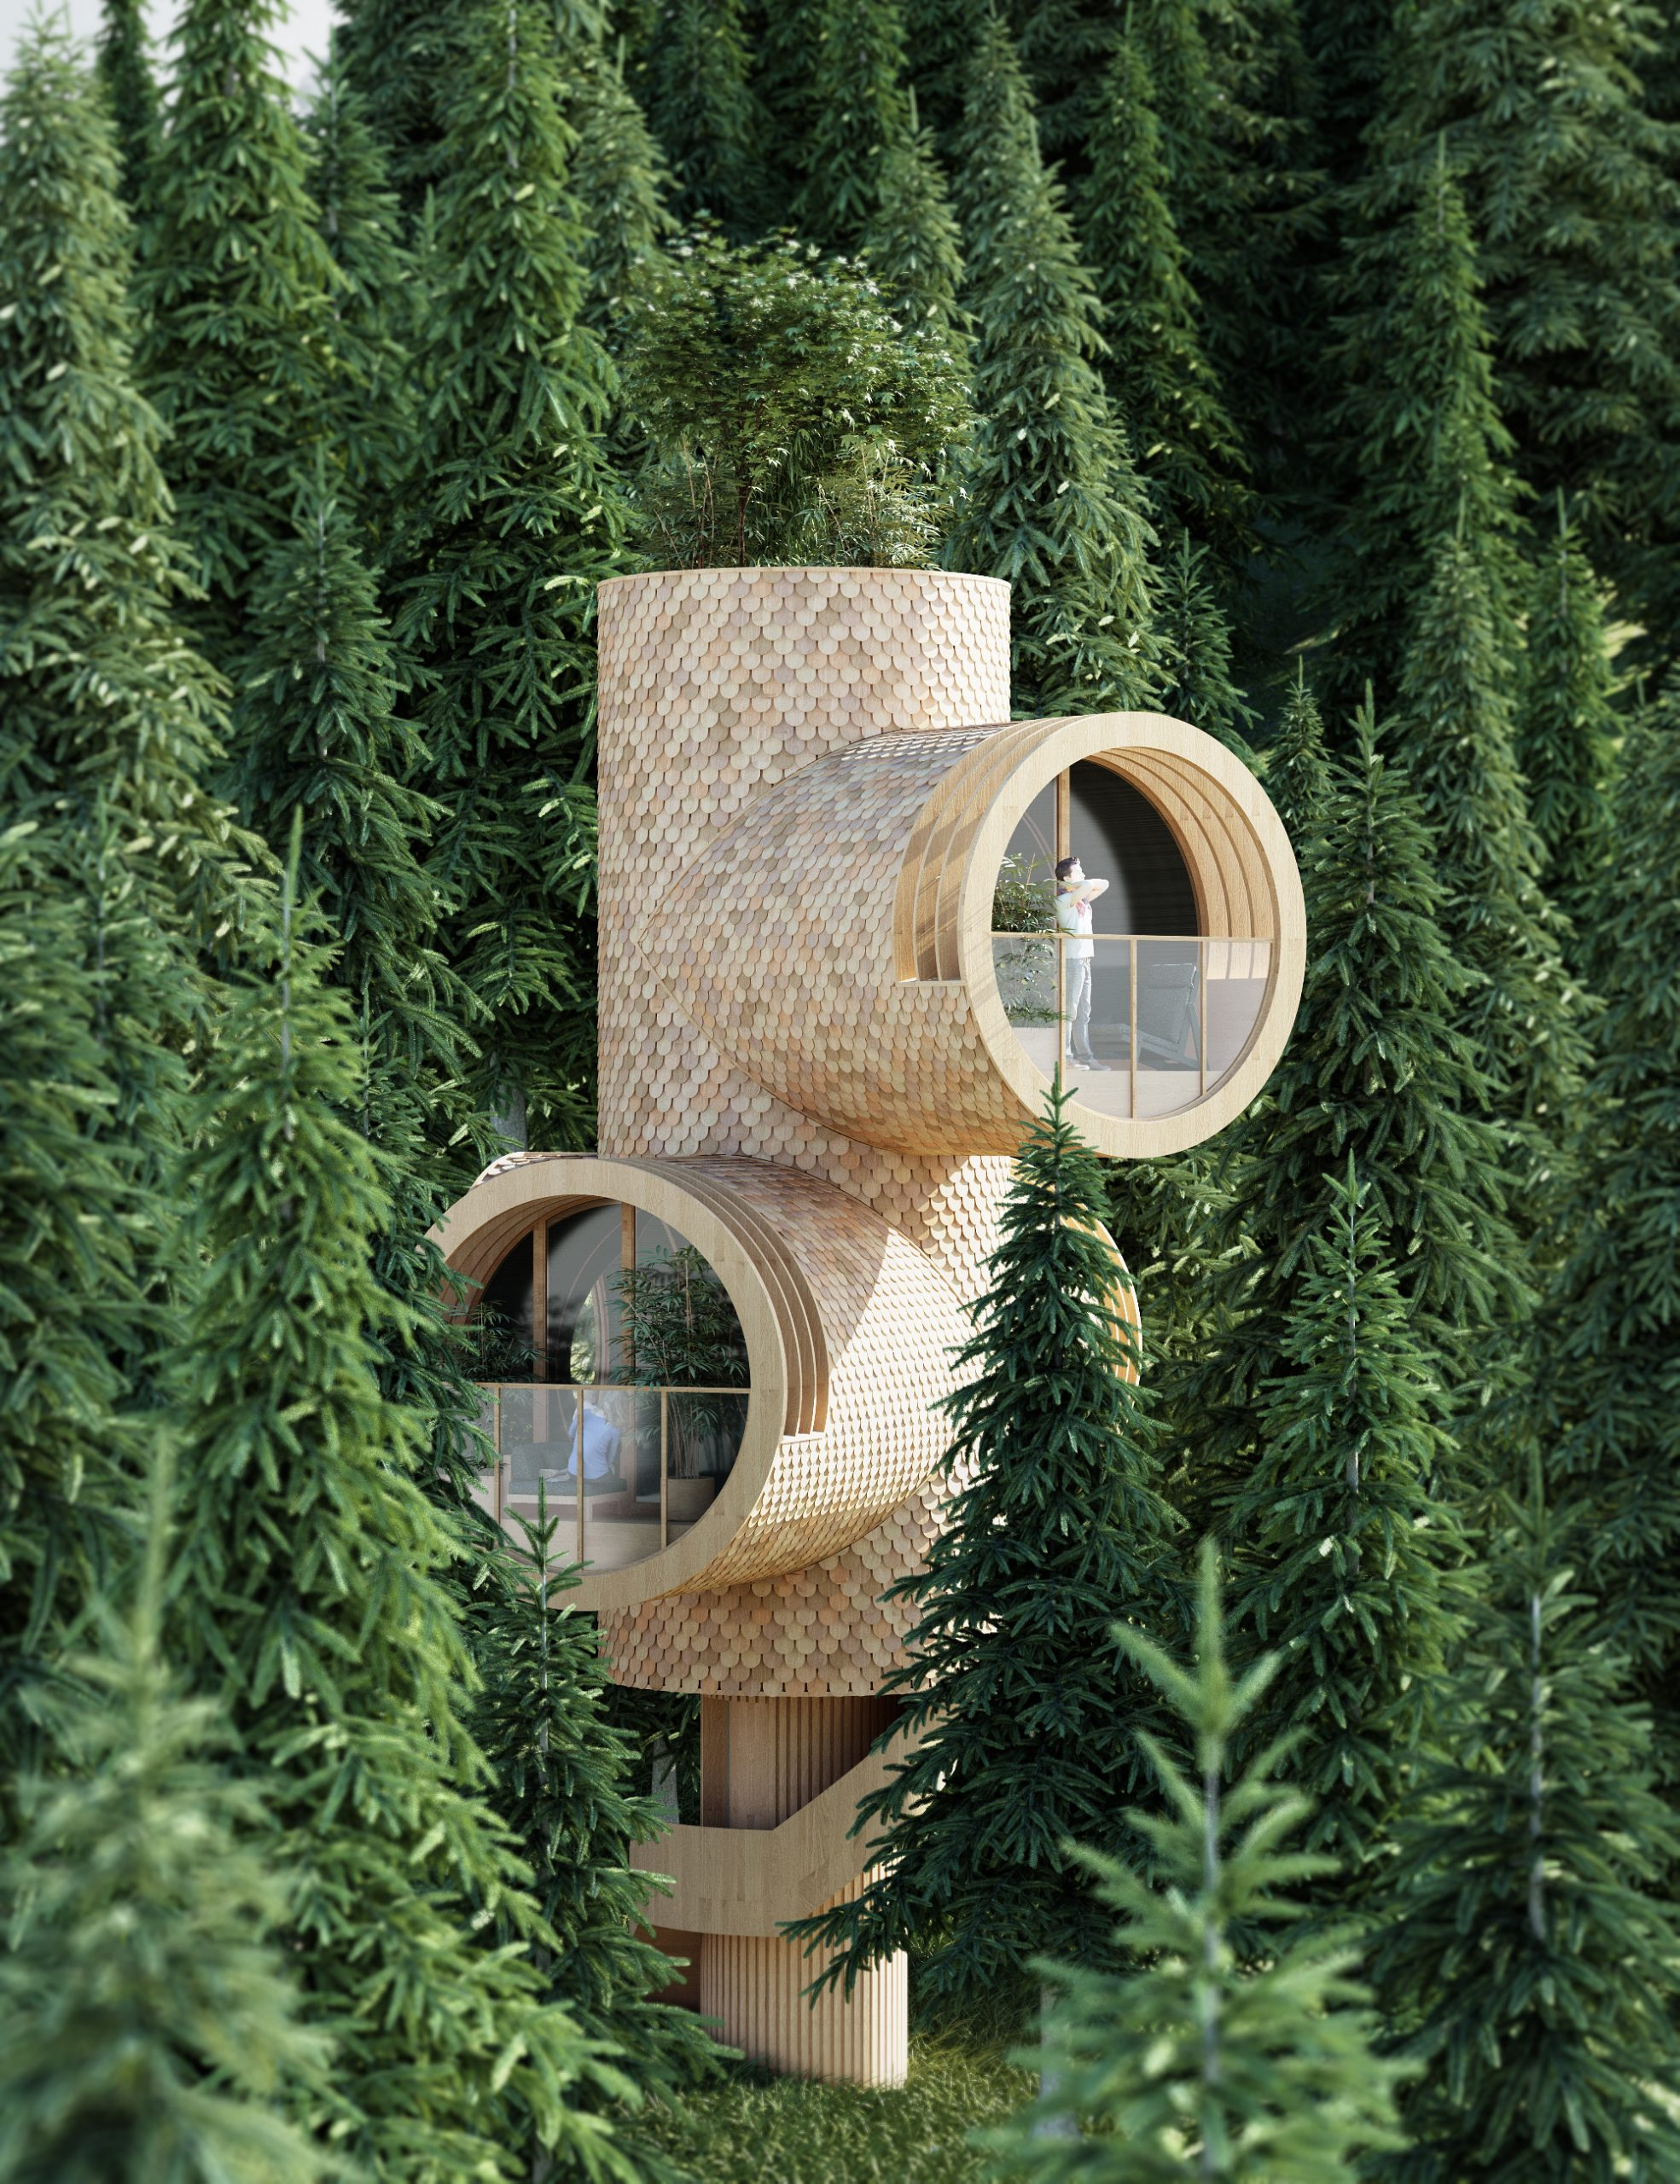 Playful modular homes nestled within nature and inspired by Minions - Eclectic Trends